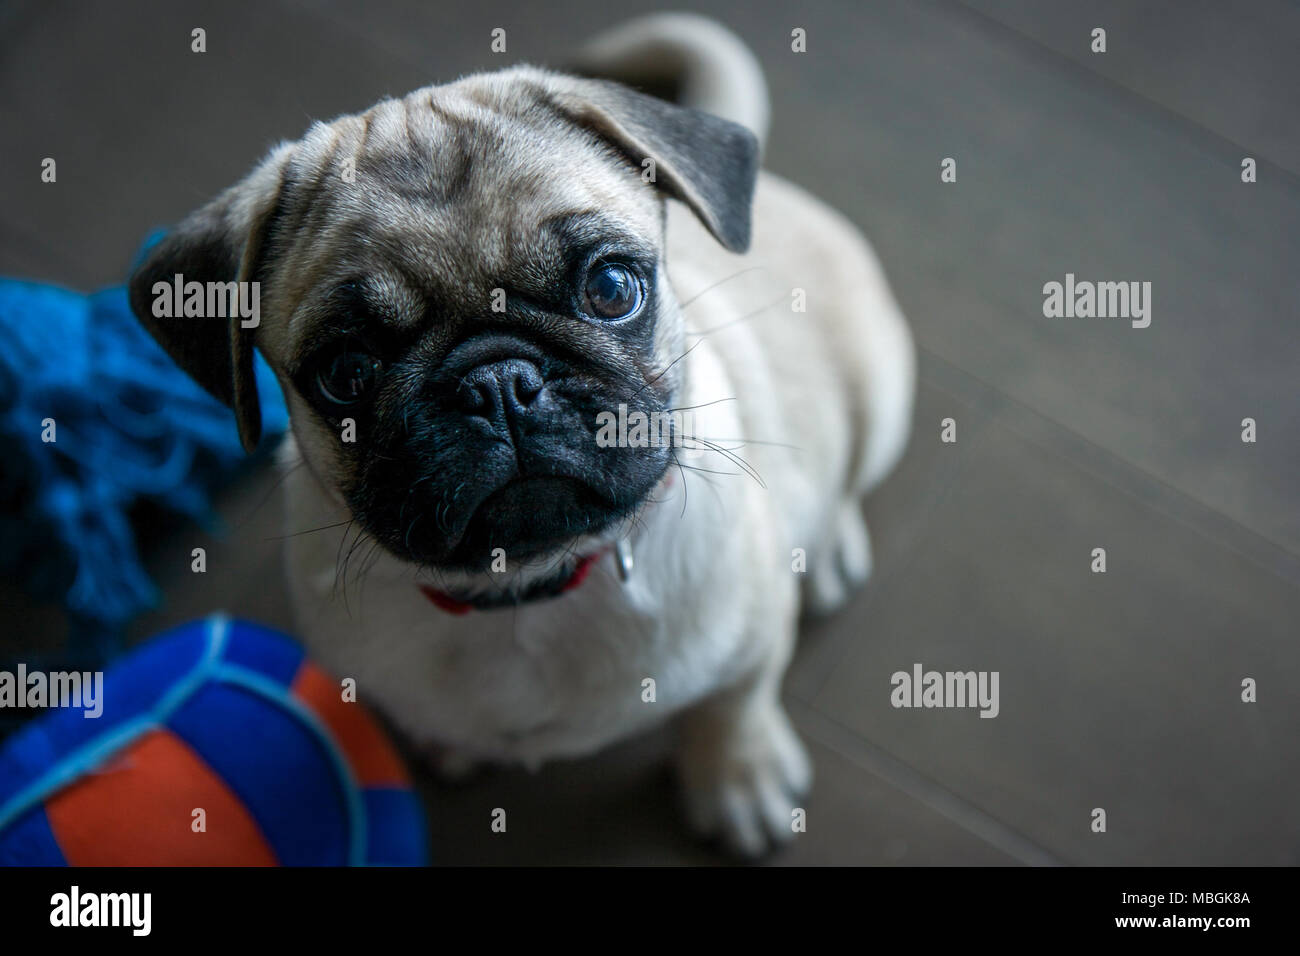 Pug Puppy Looking Upwards - Stock Image